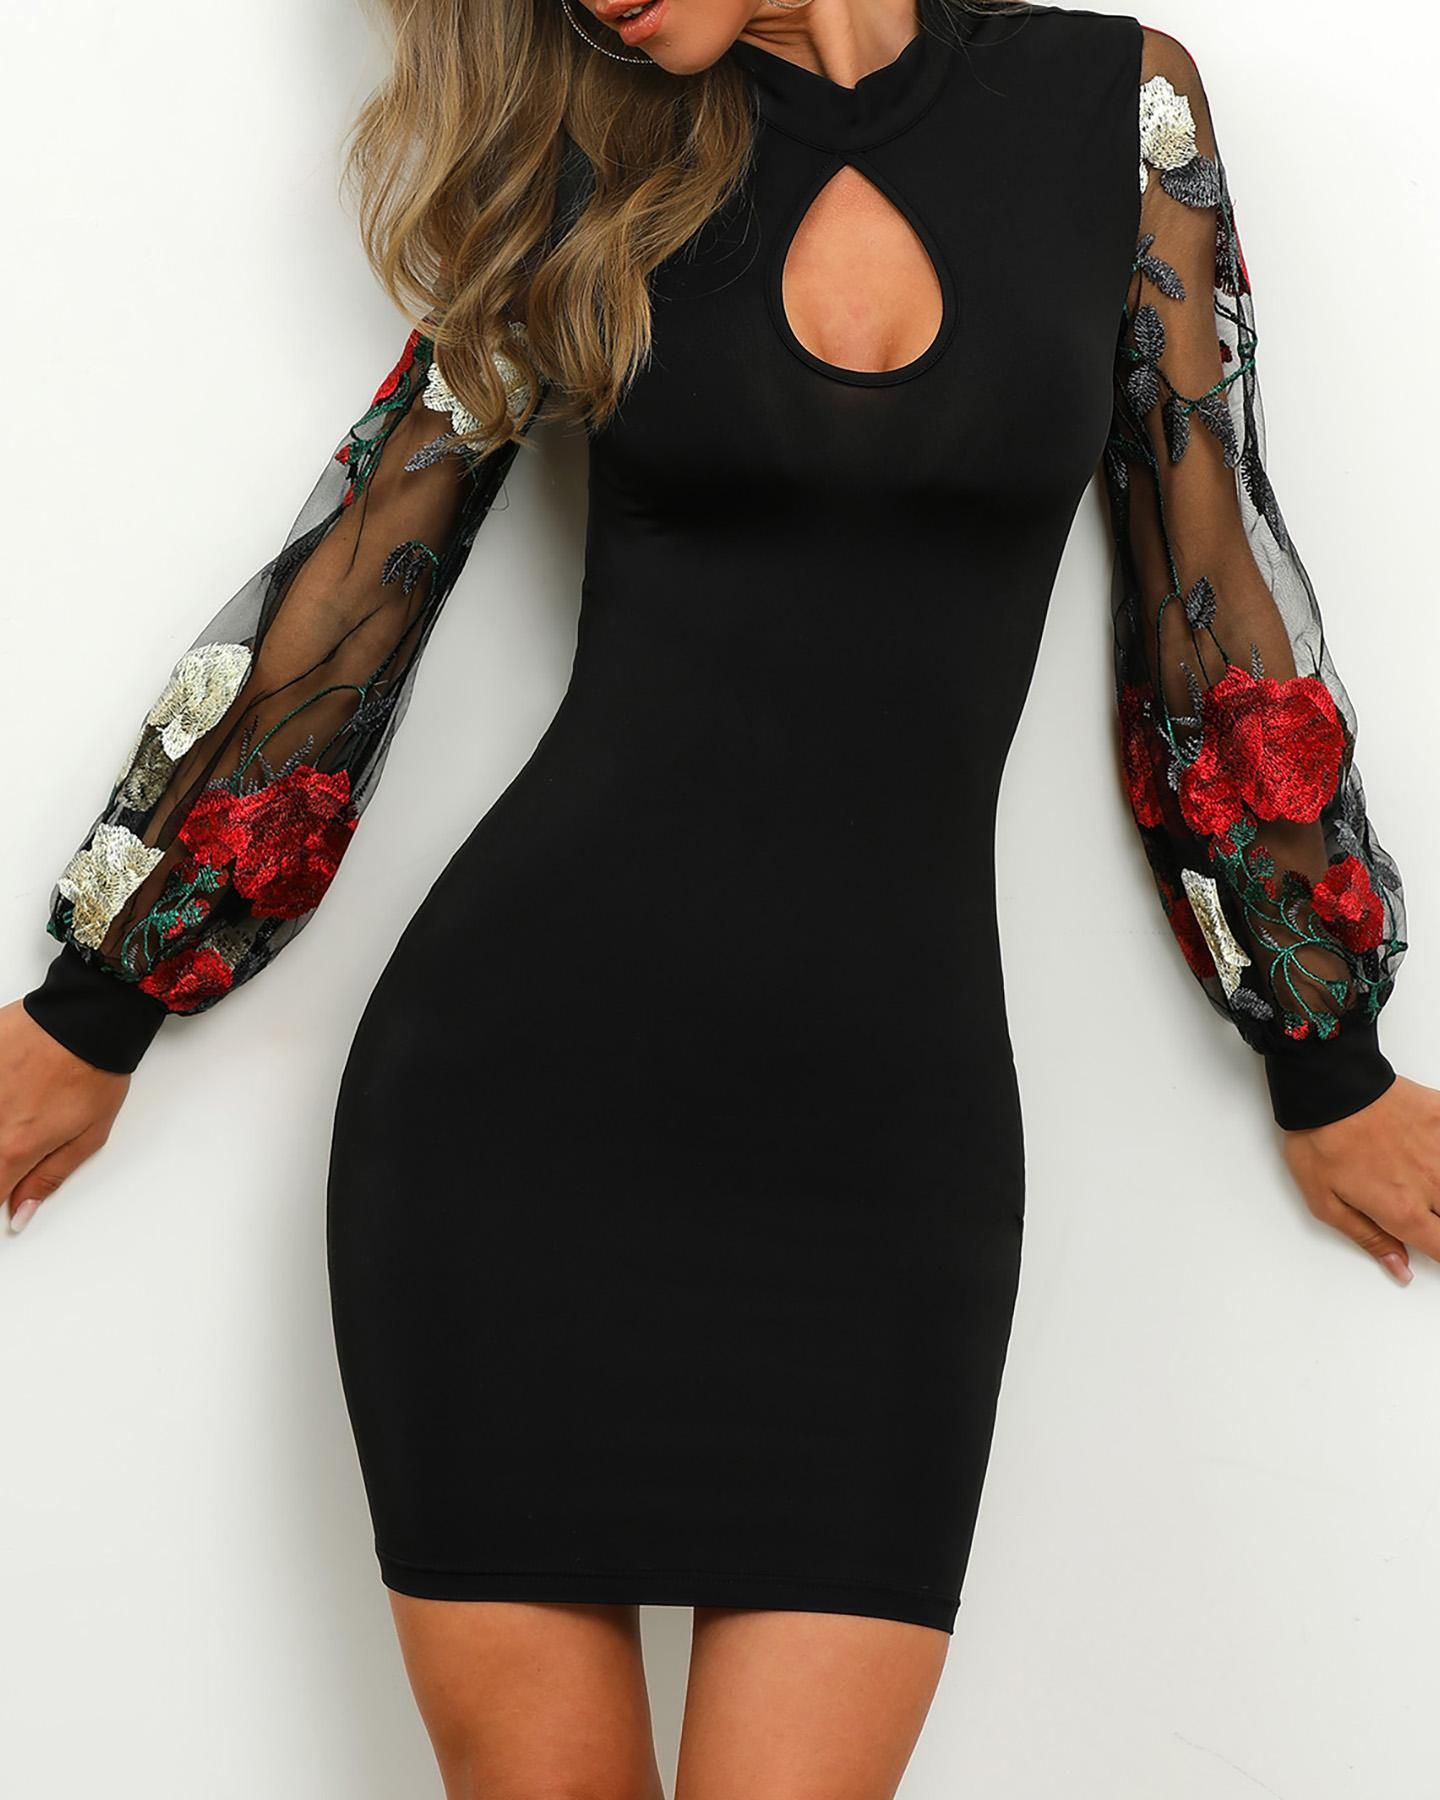 Sheer Mesh Floral Embroidery Sleeve Bodycon Dress -   15 dress Classy bodycon ideas